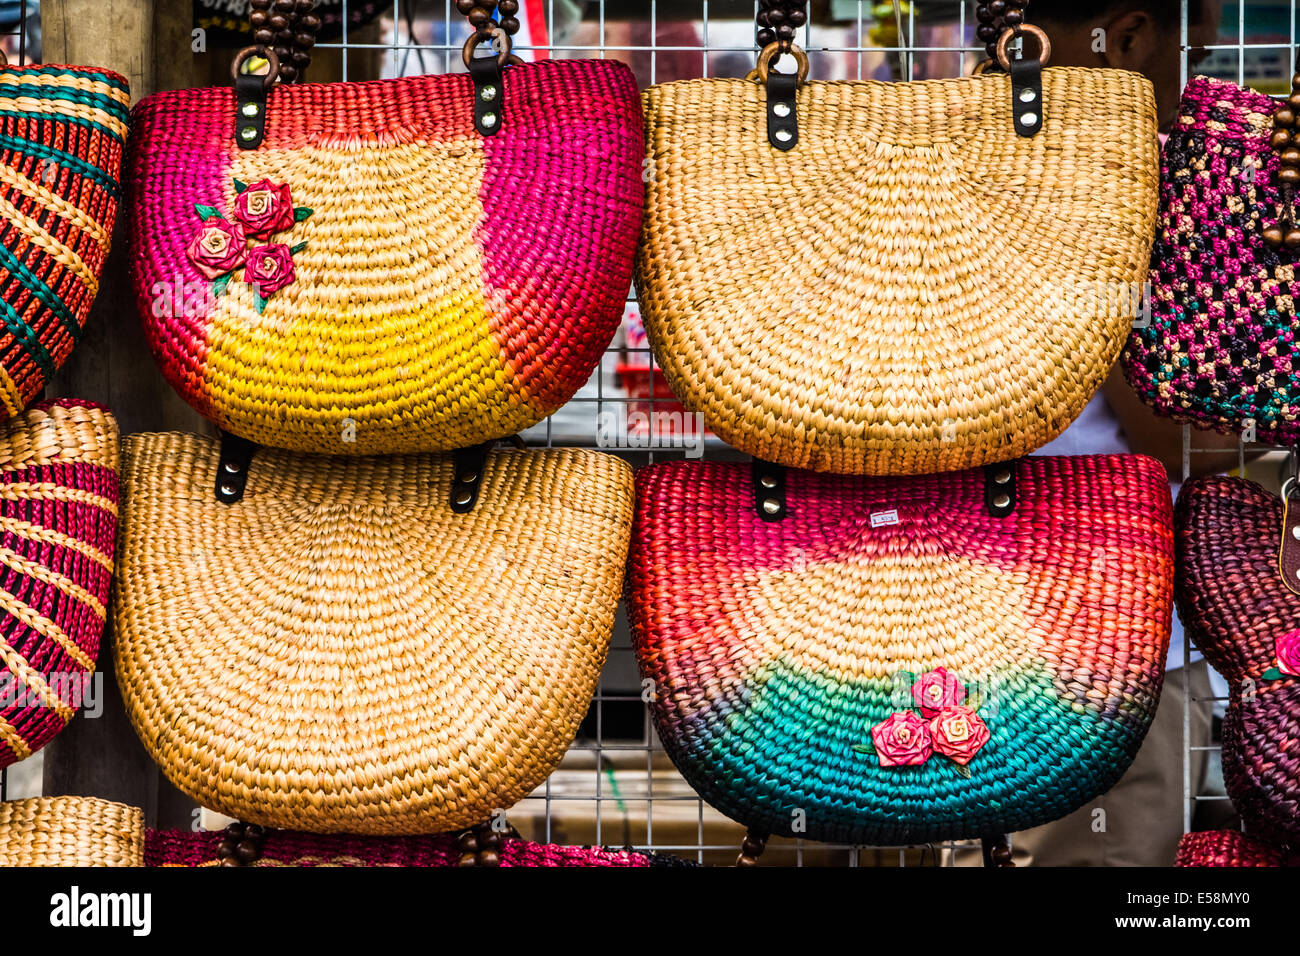 Colorfull handmade bags in a thai market. - Stock Image